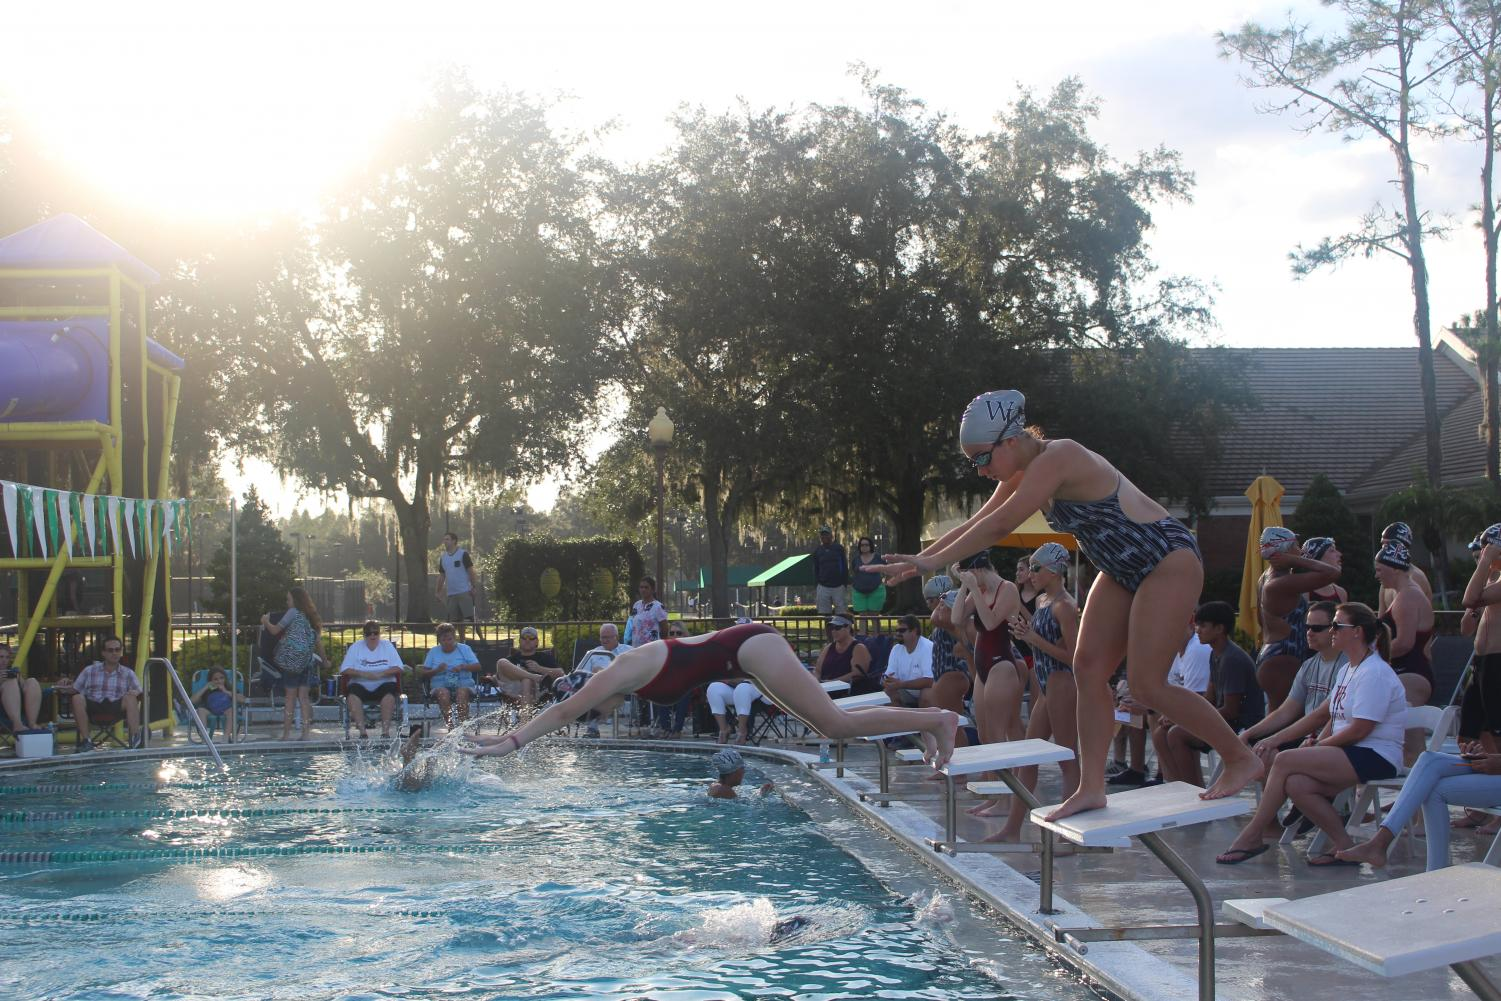 Wiregrass swim meet vs. Pasco